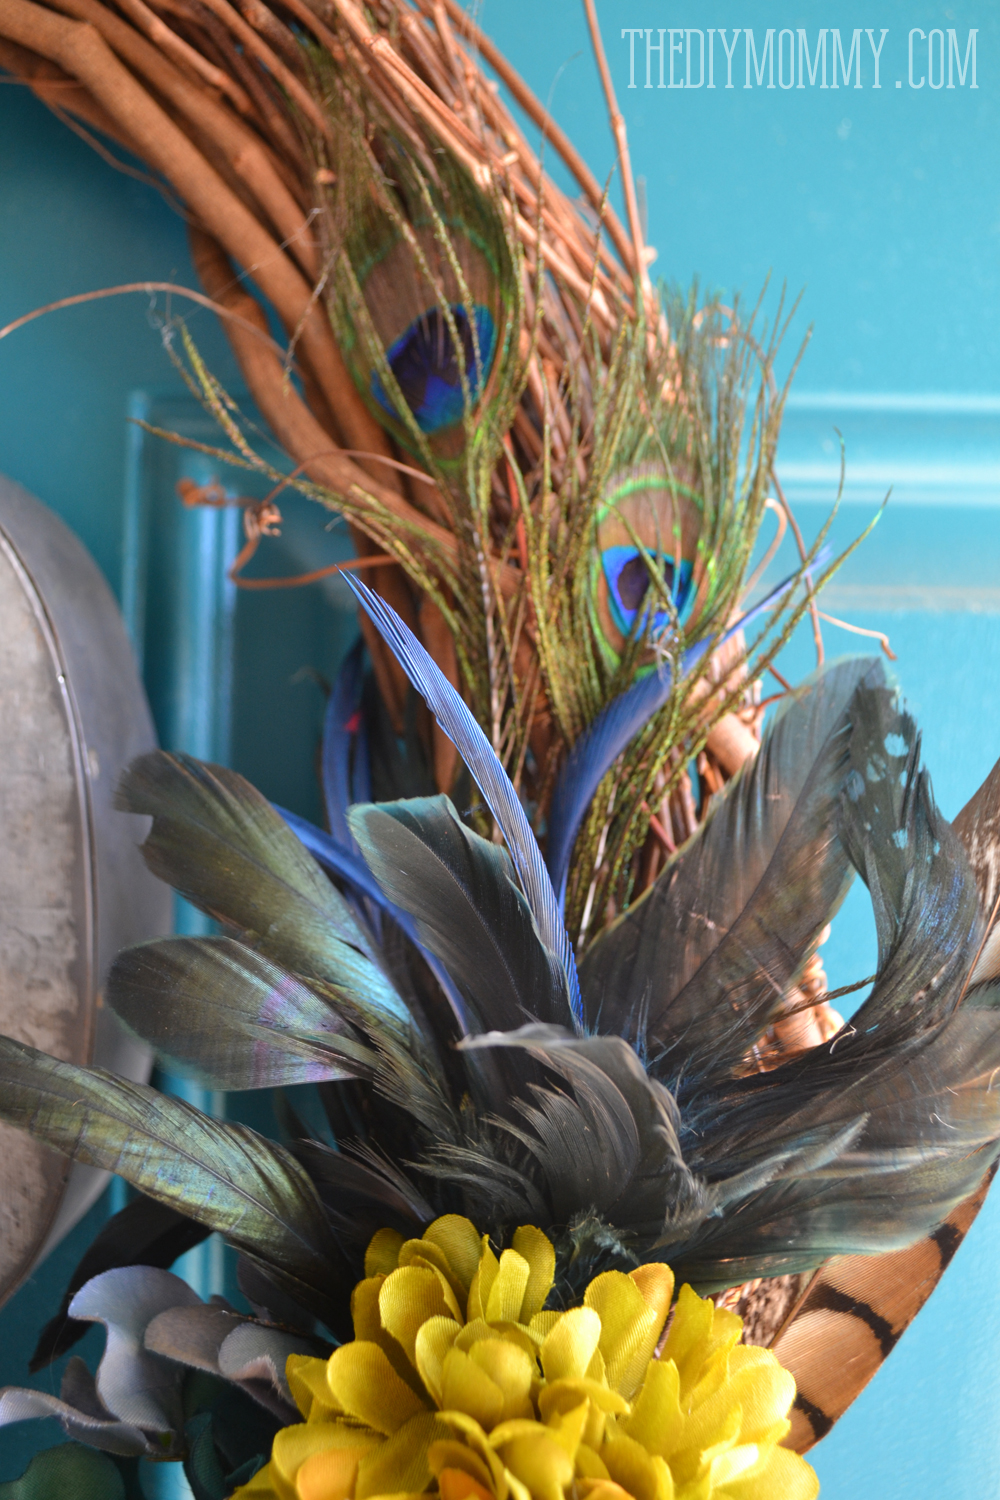 6 Fall Street Style Trends: DIY Vintage Inspired Feathered Fall Wreath (+ 6 More